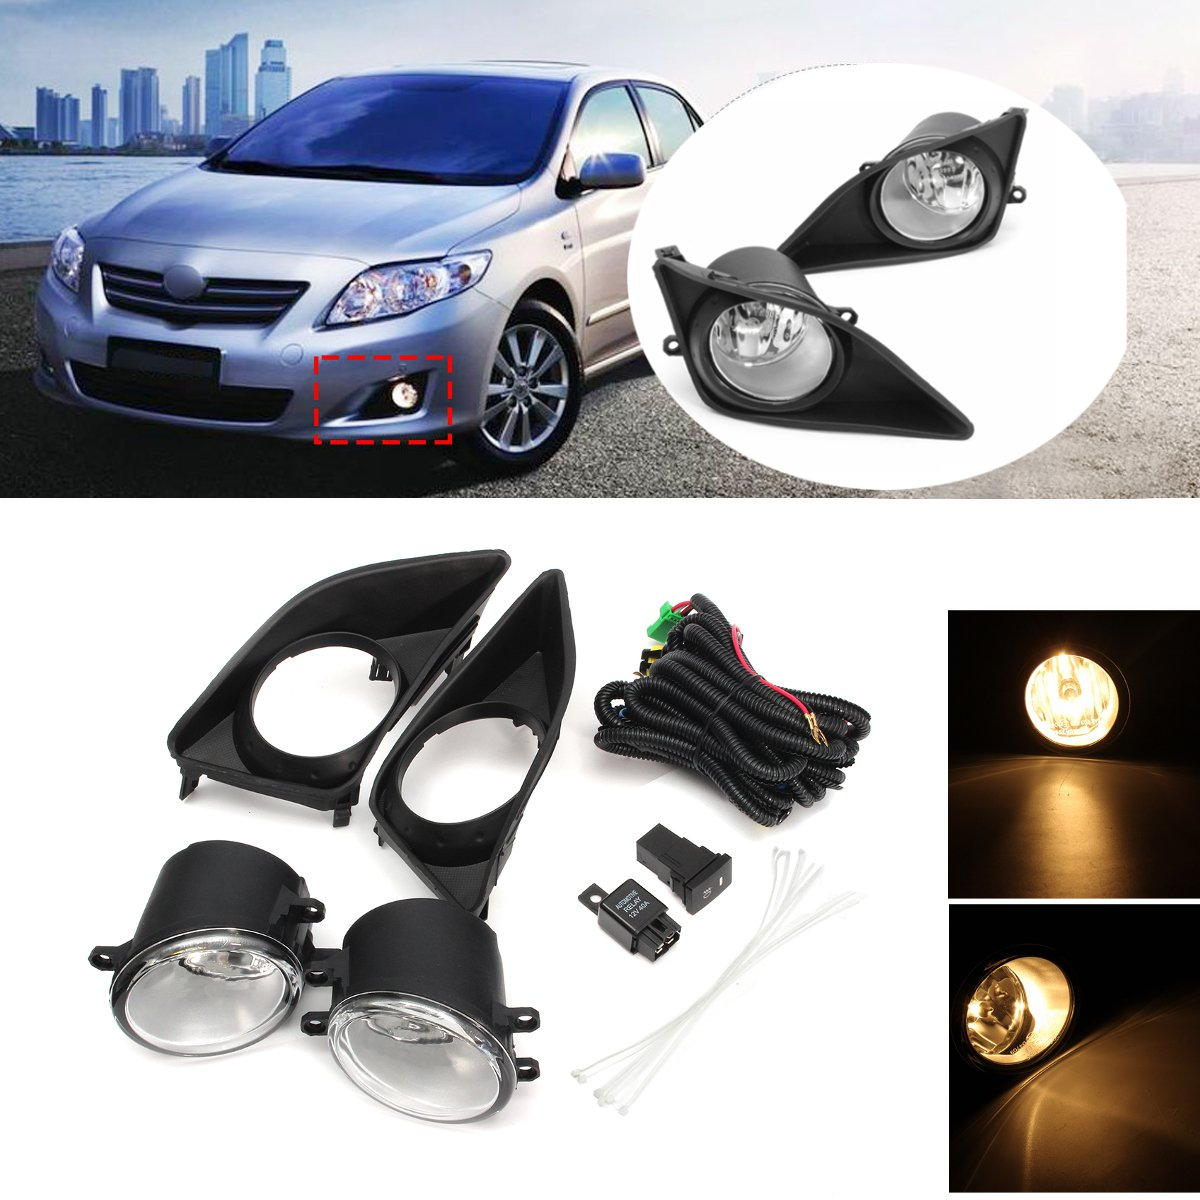 2Pcs Front Bumper Left Right Fog Light Lamp+Black Grille Covers Switch H11 Bulbs For Toyota Corolla 2008-2010 2pcs front bumper left right fog light lamp black grille covers switch h11 bulbs for toyota corolla 2008 2010